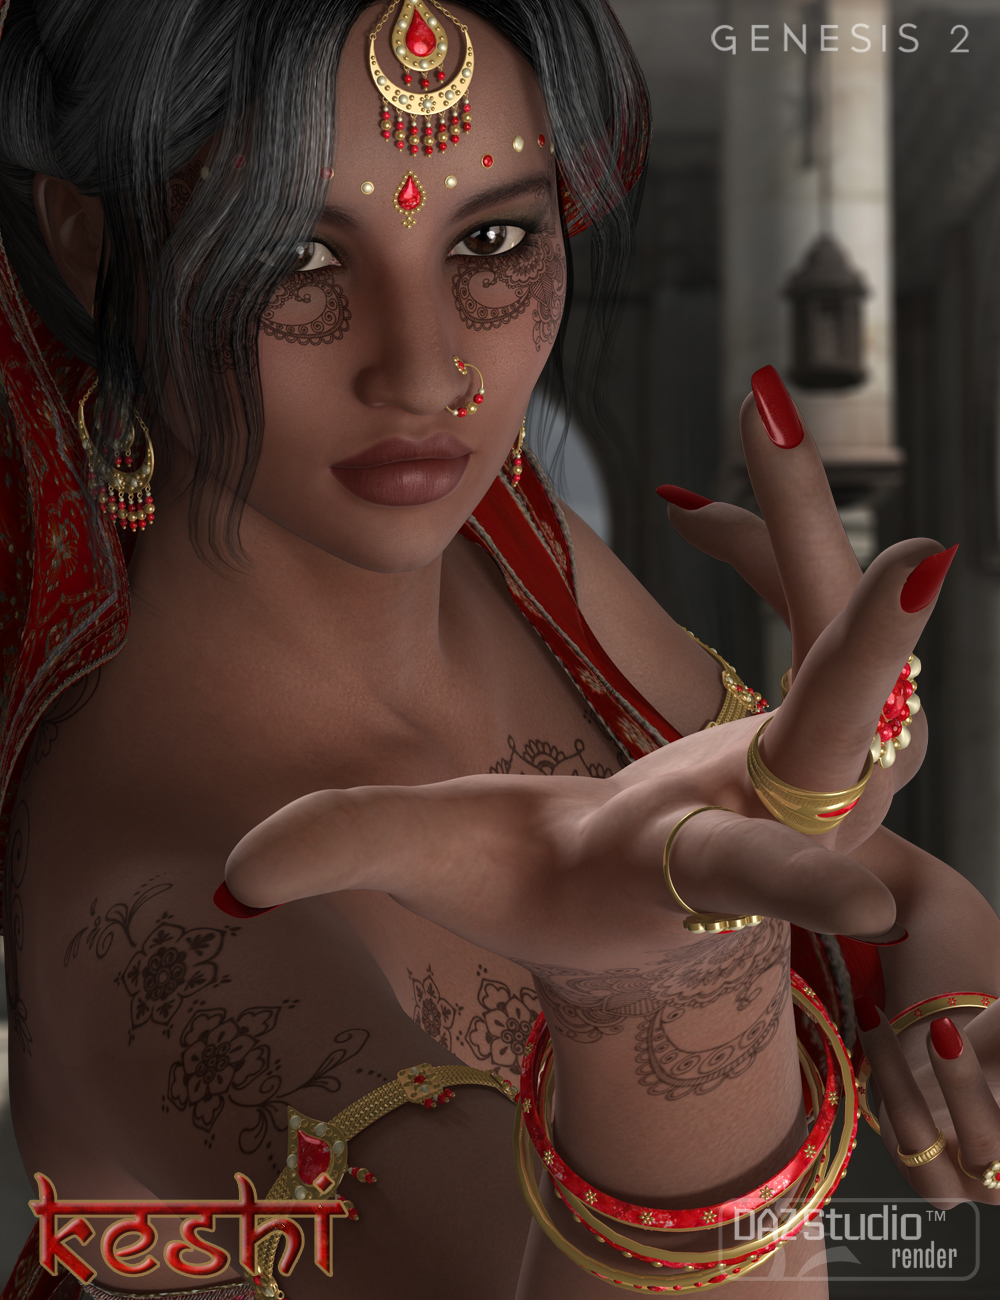 Keshi - Indian Character, Accessories and Poses Bundle by: SabbyFred Winkler ArtFisty & DarcSedor, 3D Models by Daz 3D